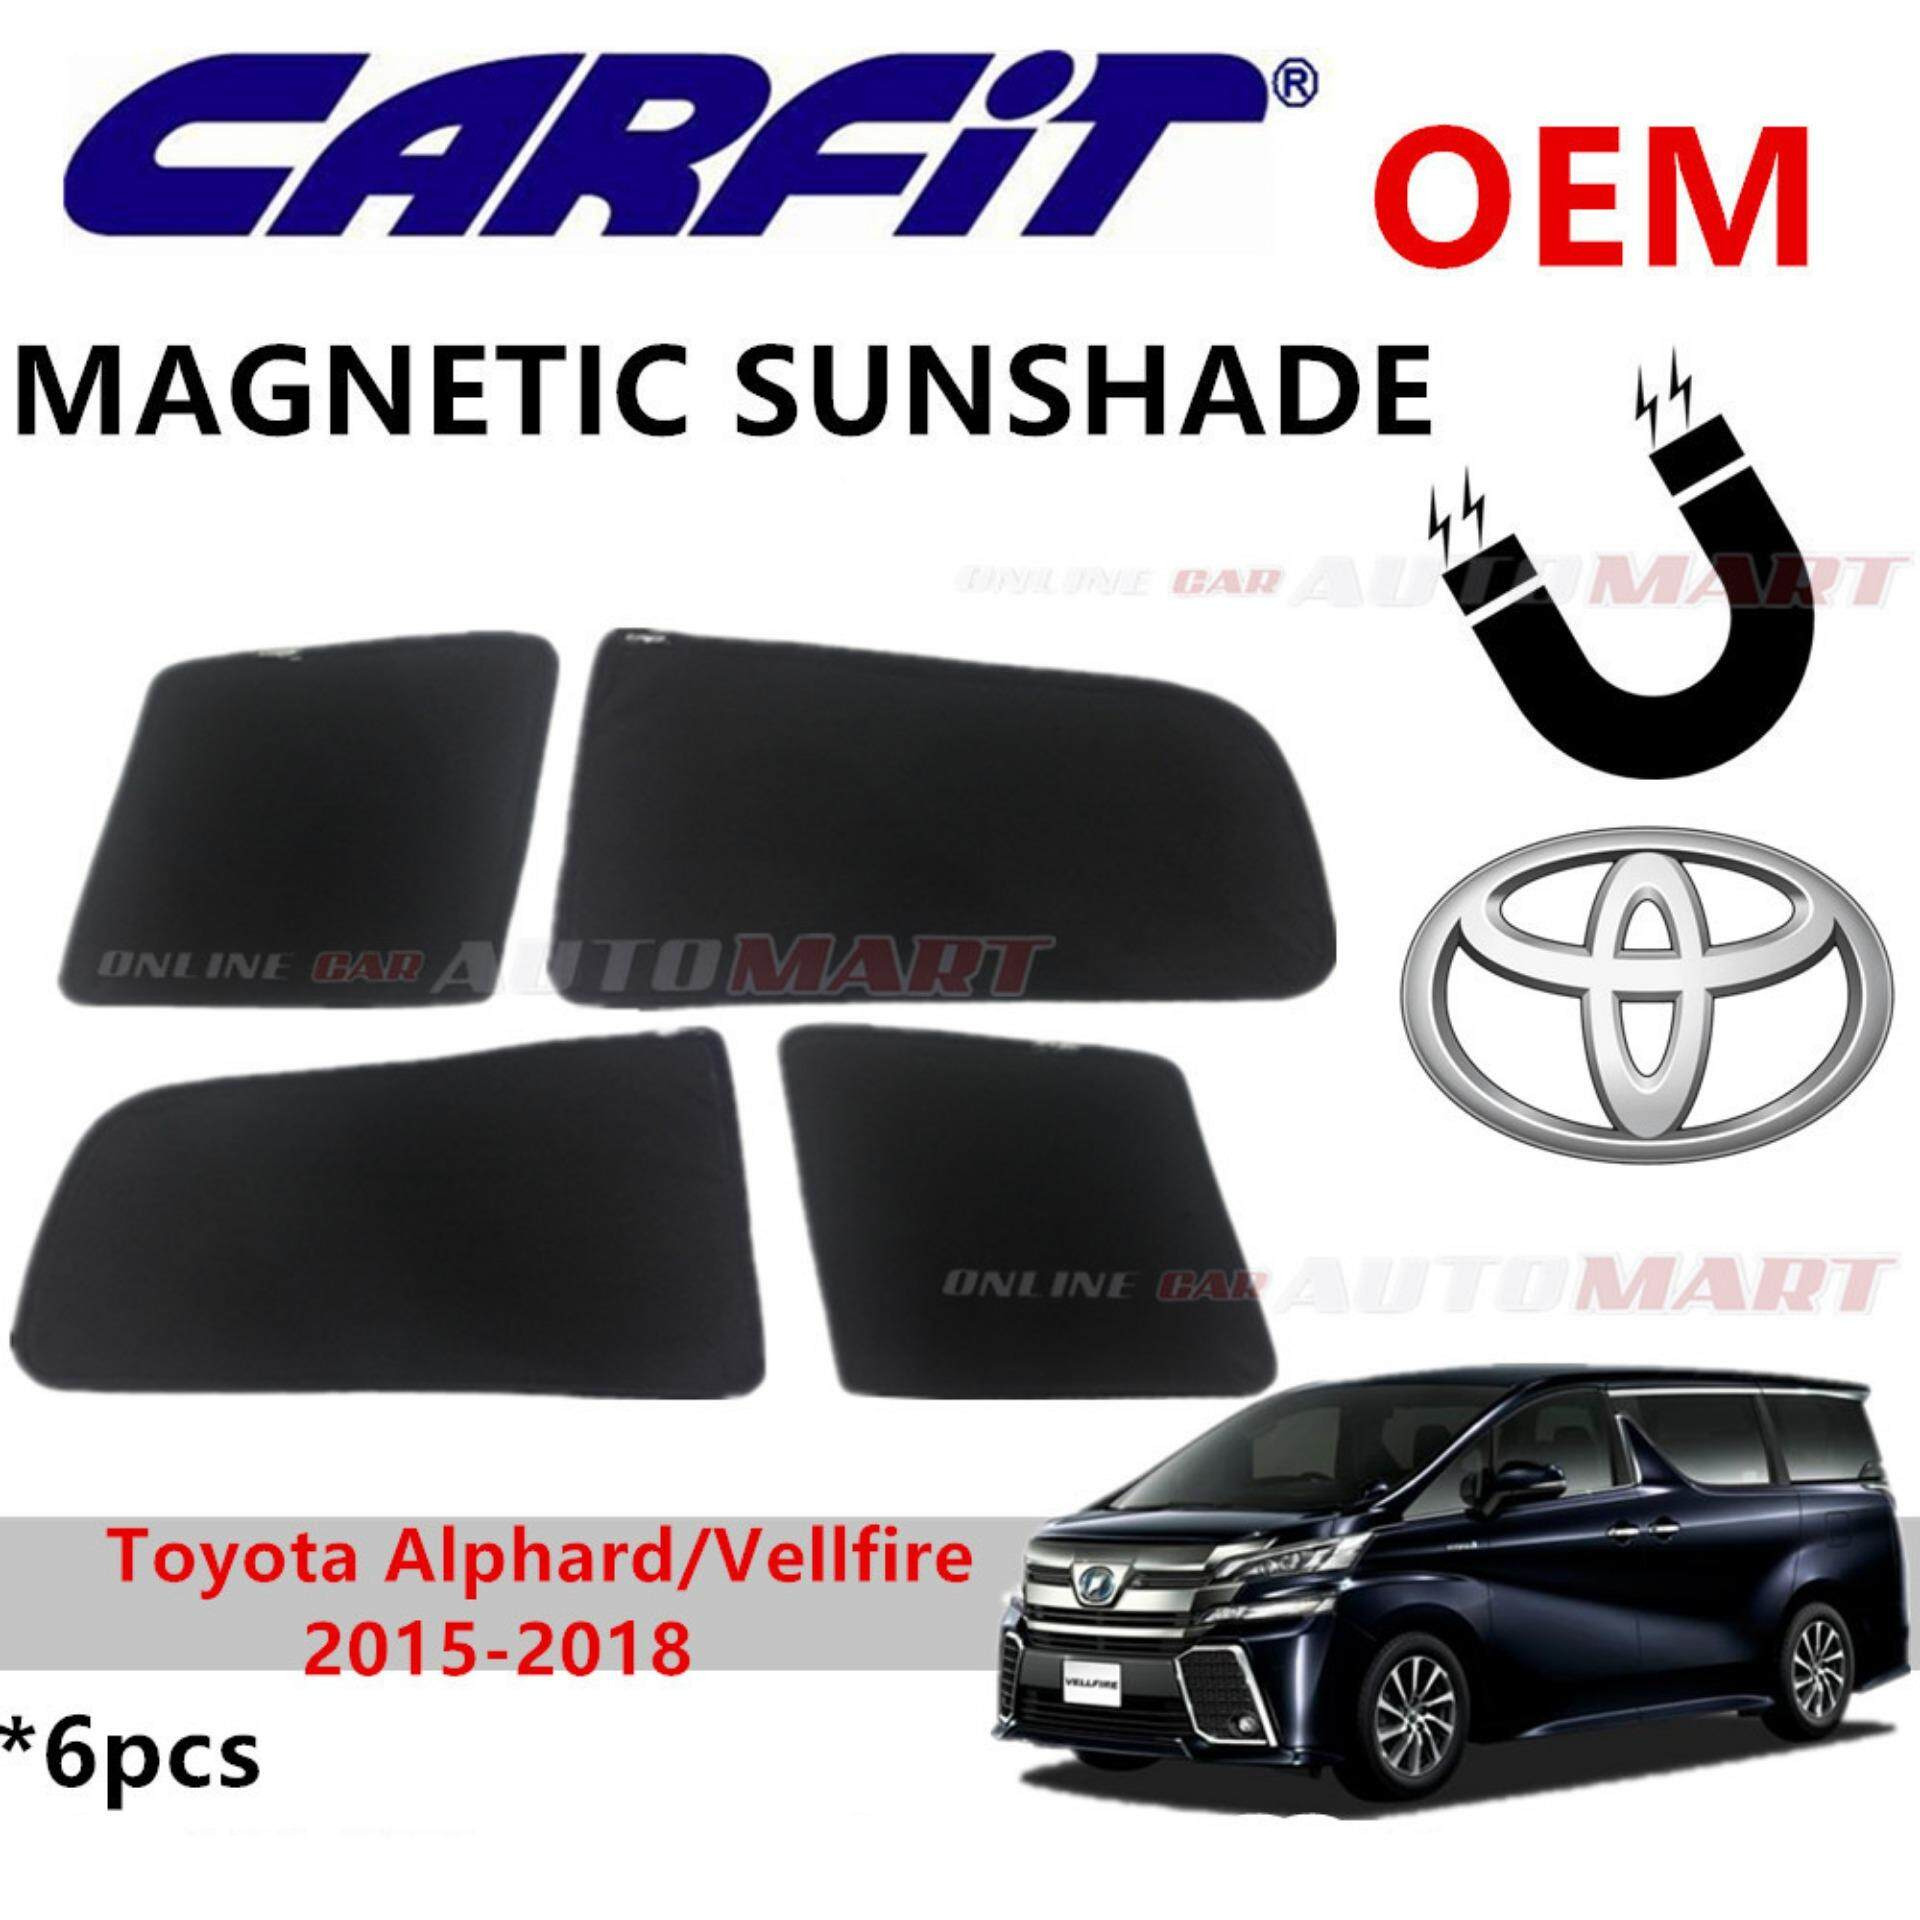 CARFIT OEM Magnetic Custom Fit Sunshade For Toyota Alphard/Vellfire Yr 2015-2018 (6pcs Sets)